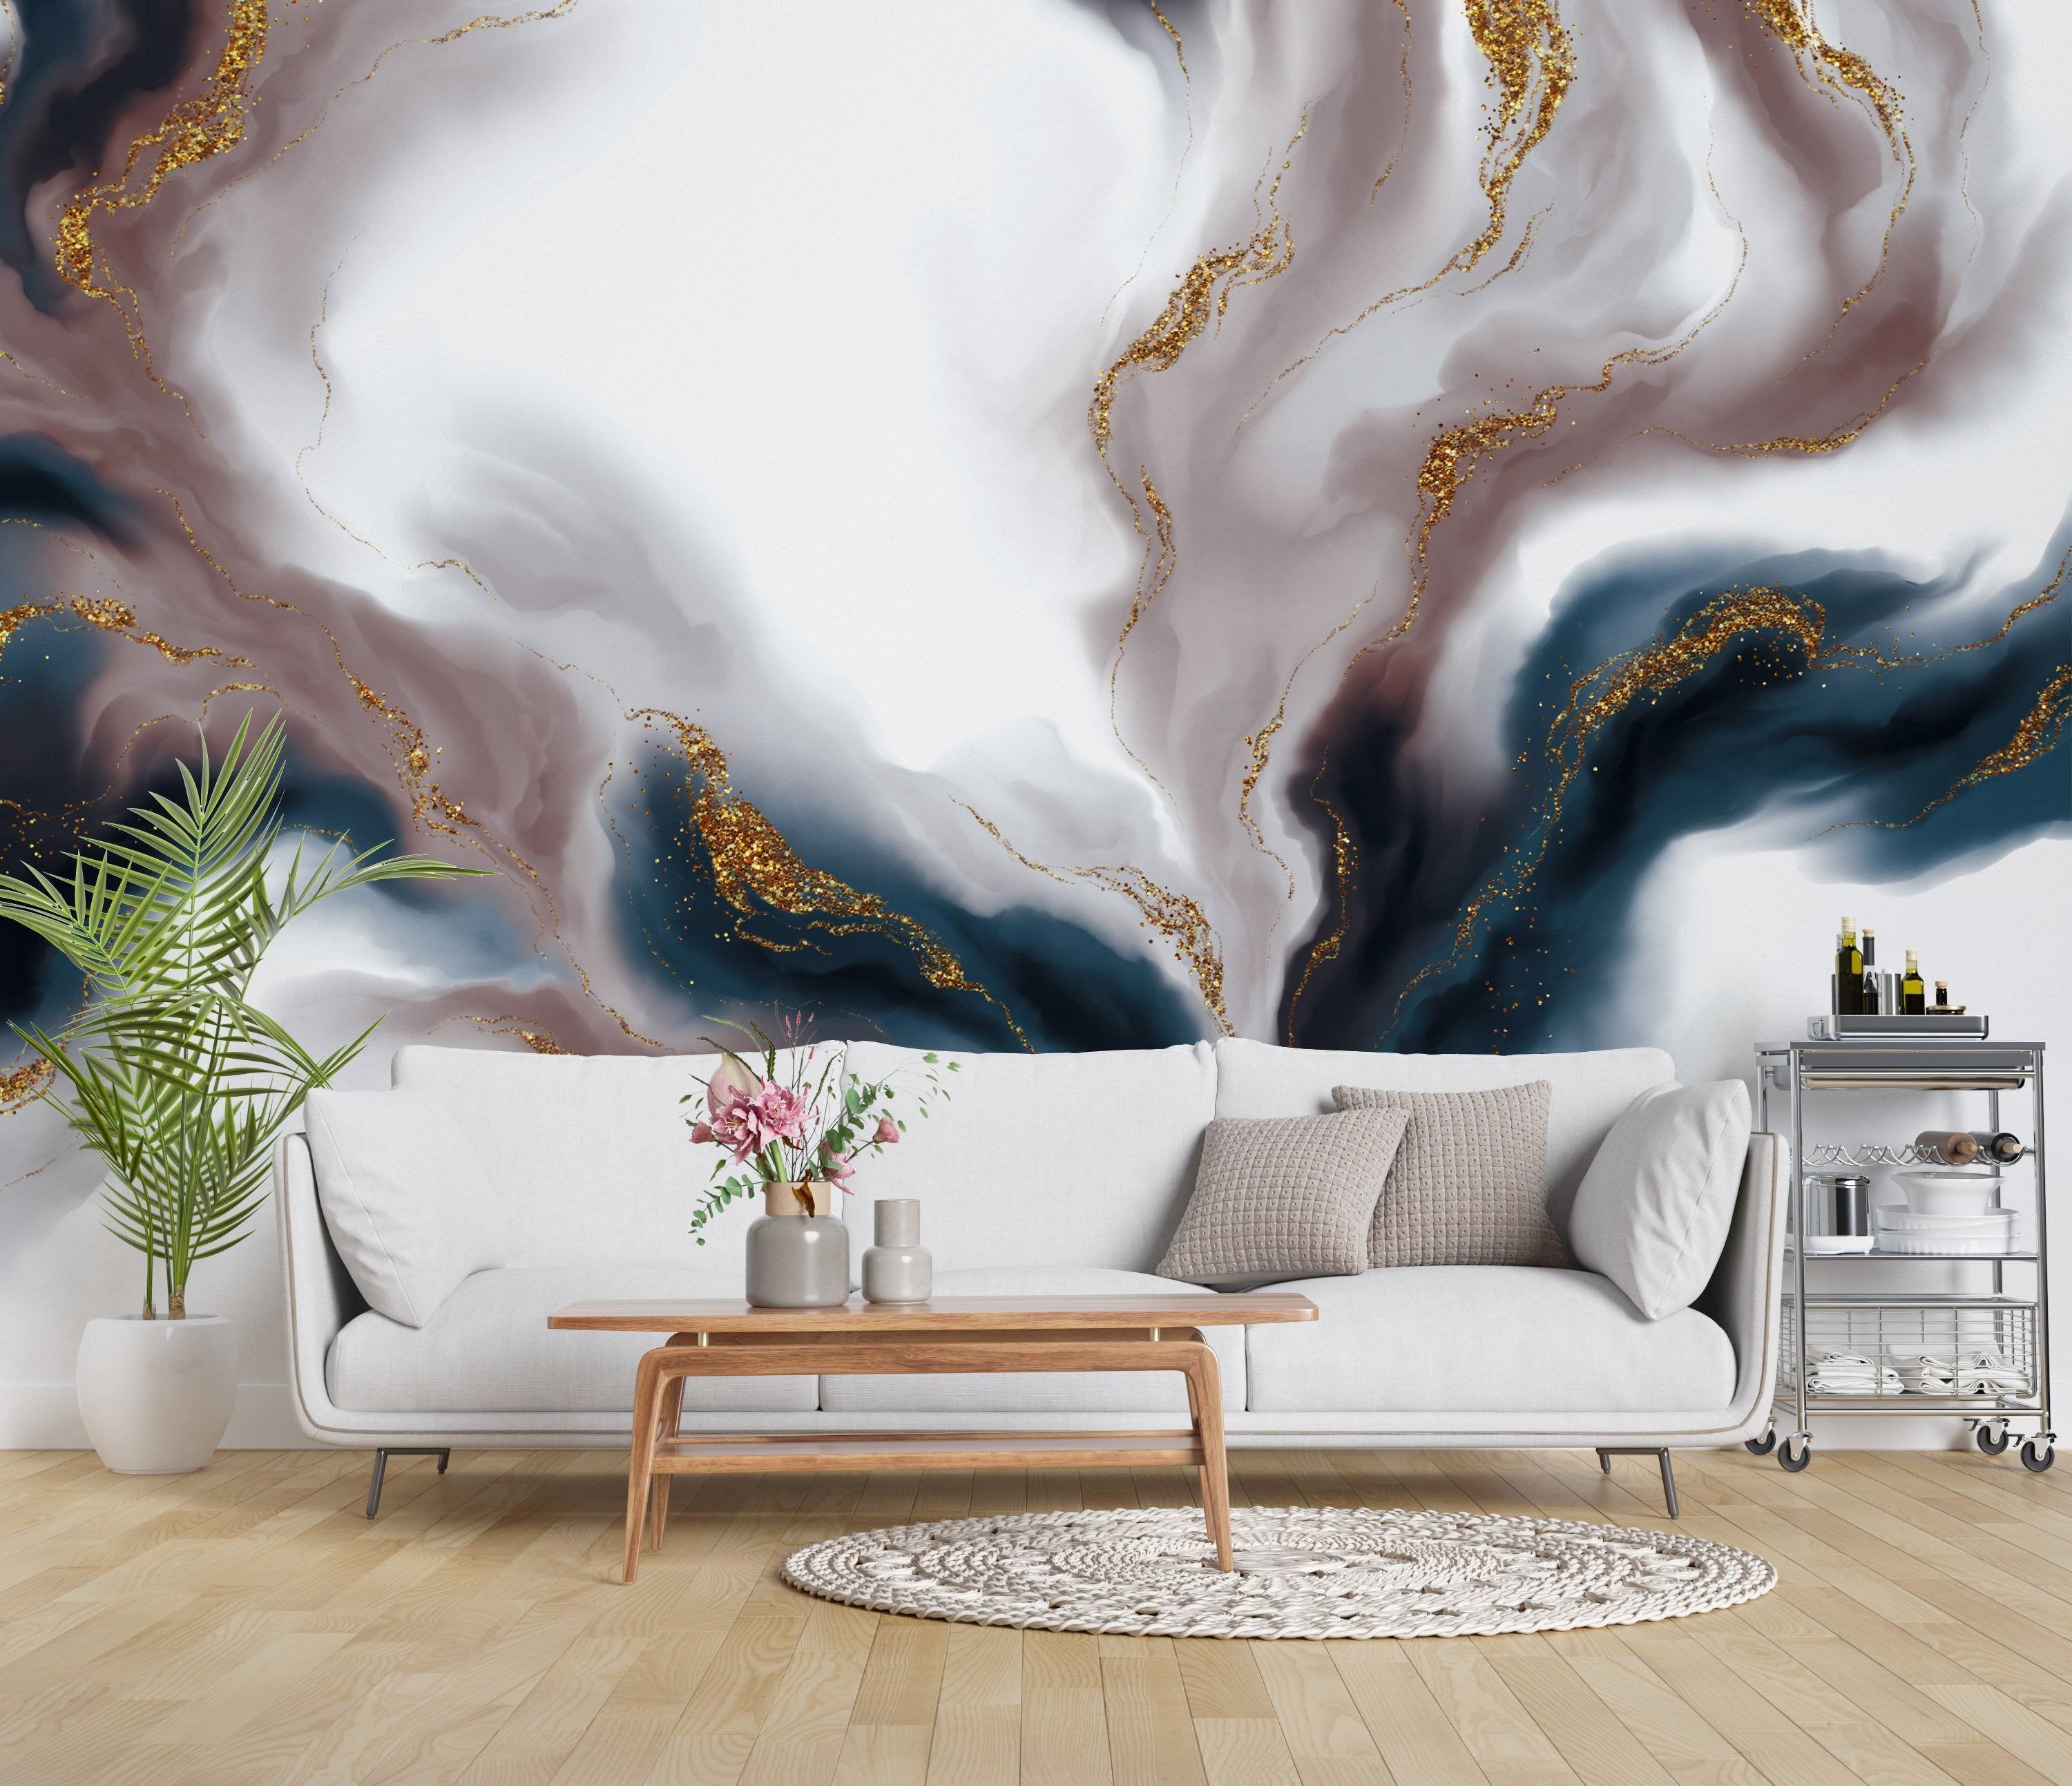 Abstract Colorful Smokes Luxury Modern Background Wallpaper Etsy In 2021 Gold Abstract Wallpaper Abstract Wallpaper Wallpaper